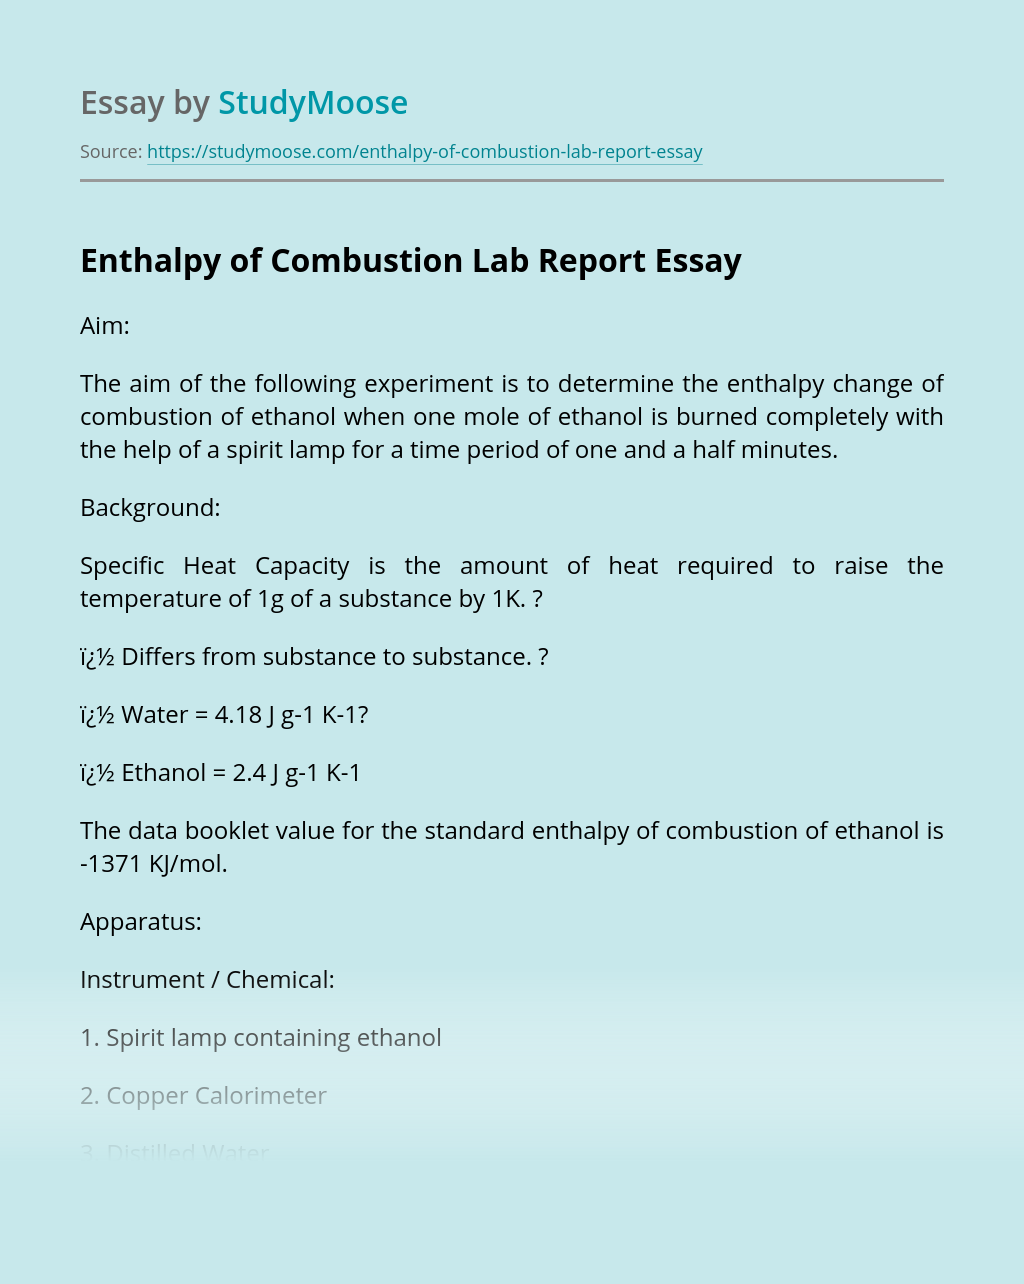 Enthalpy of Combustion Lab Report